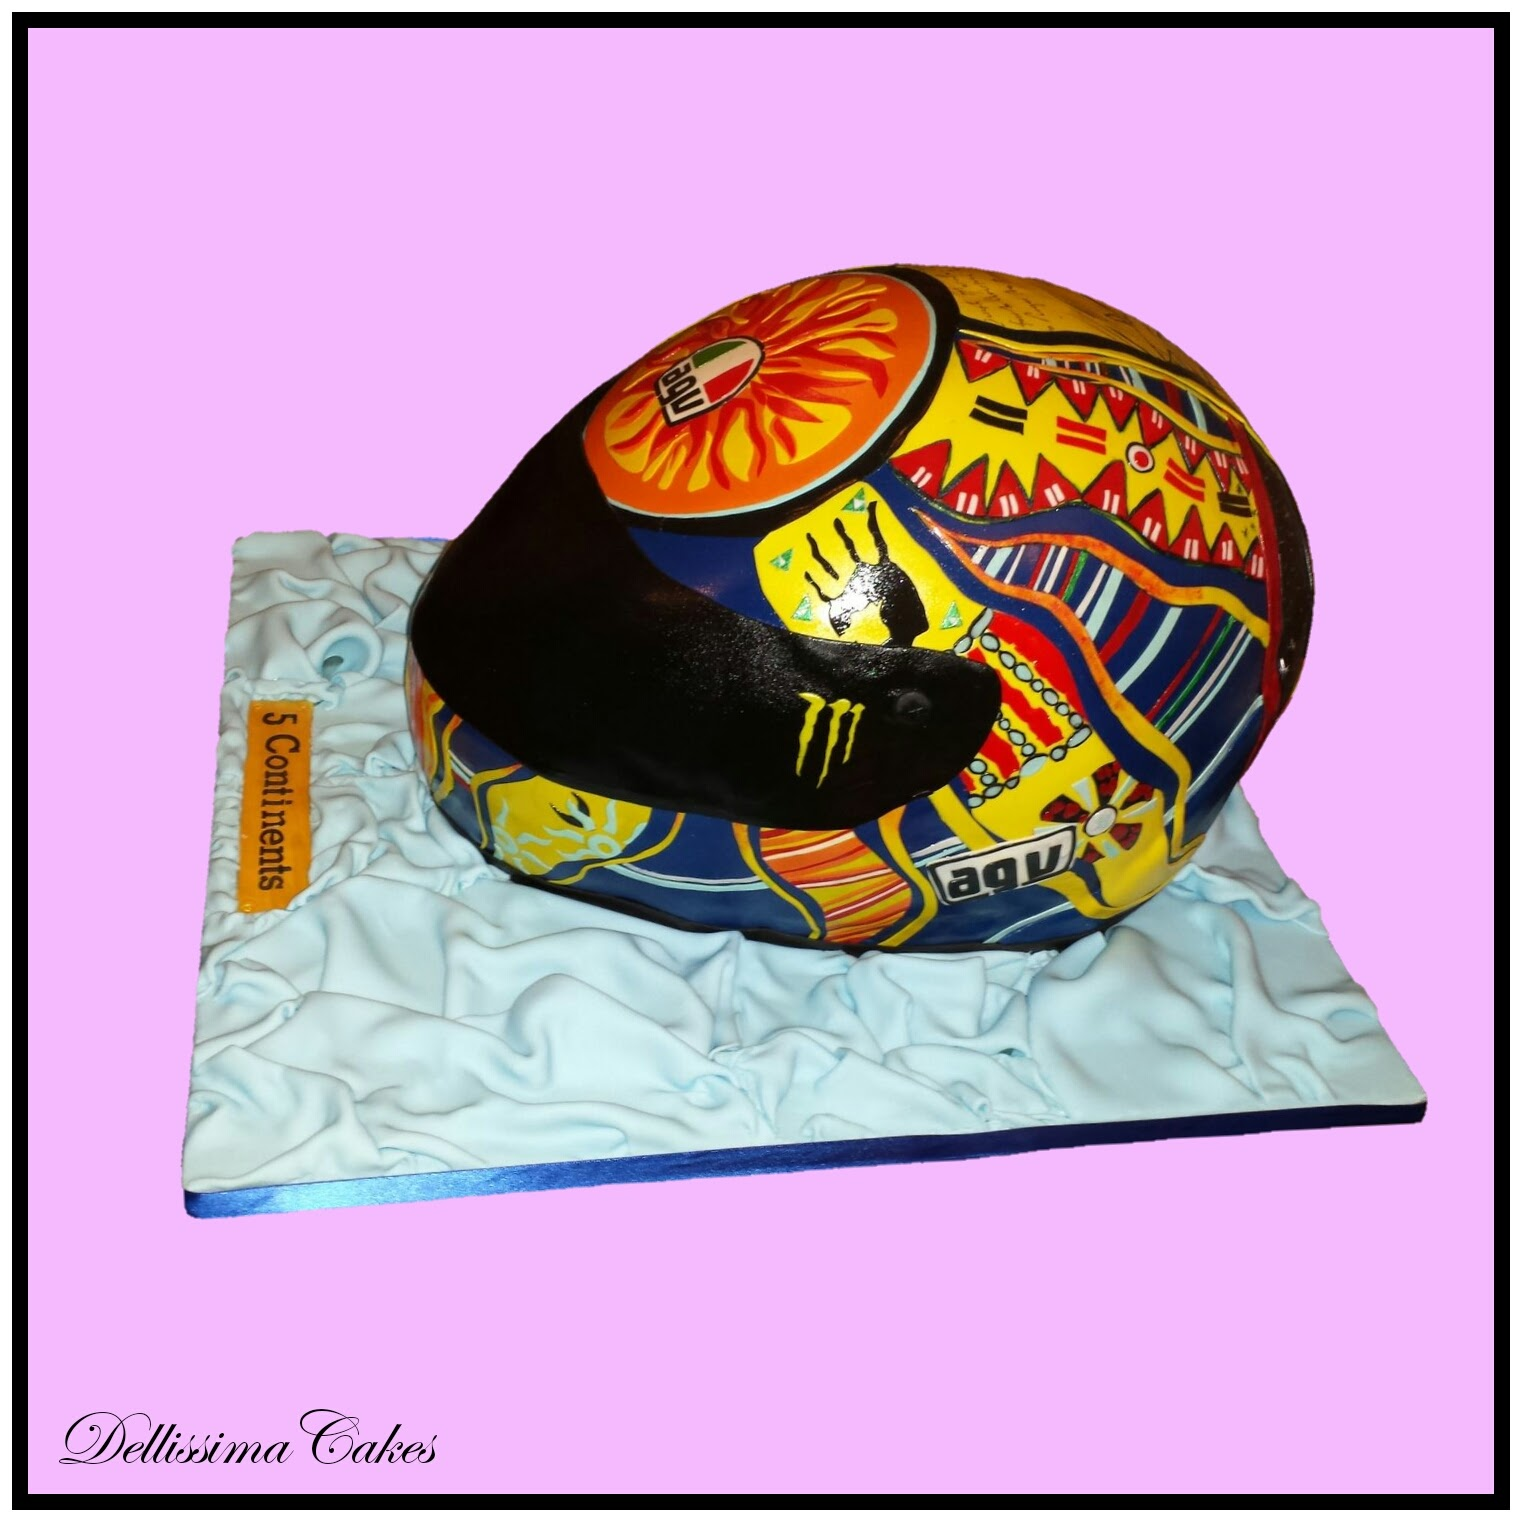 Valentino Rossi Helmet Cake 5-Continents 3.jpg